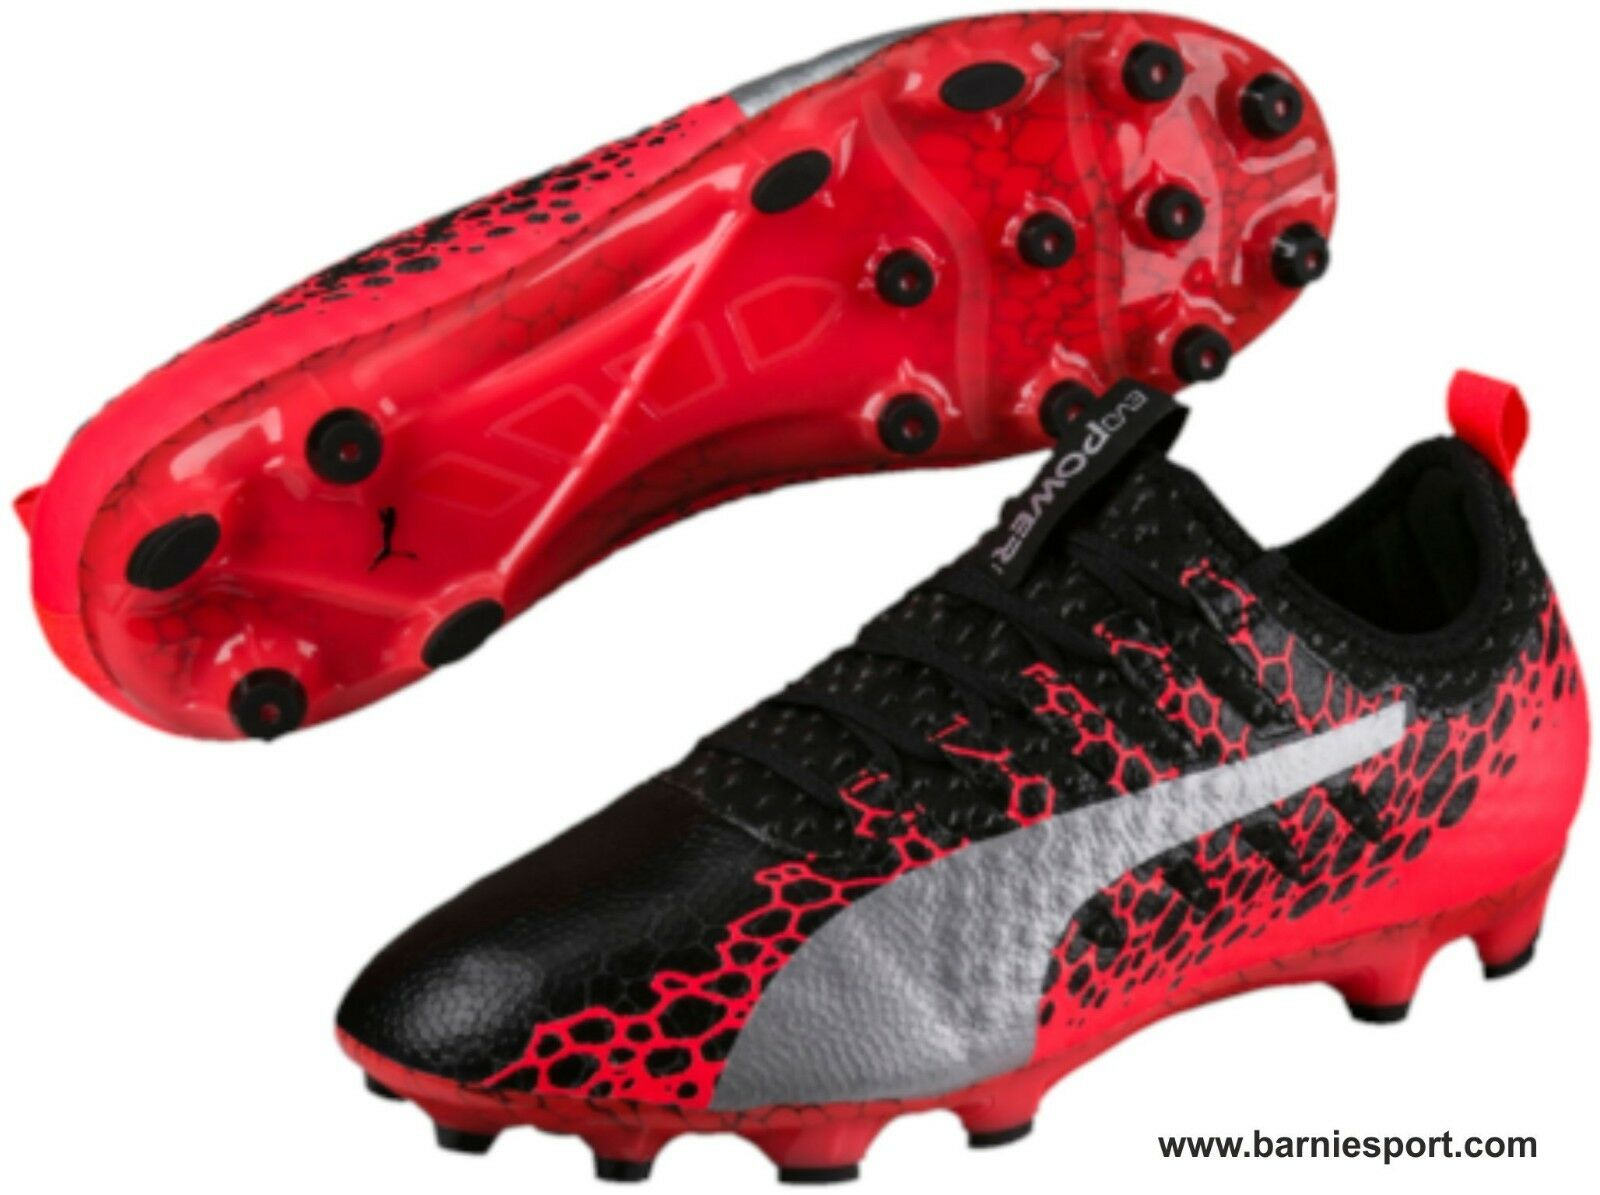 Größe 10. PUMA evoPOWER VIGOR 1 AG ASTRO TURF FOOTBALL Stiefel.  NEW   SAVE